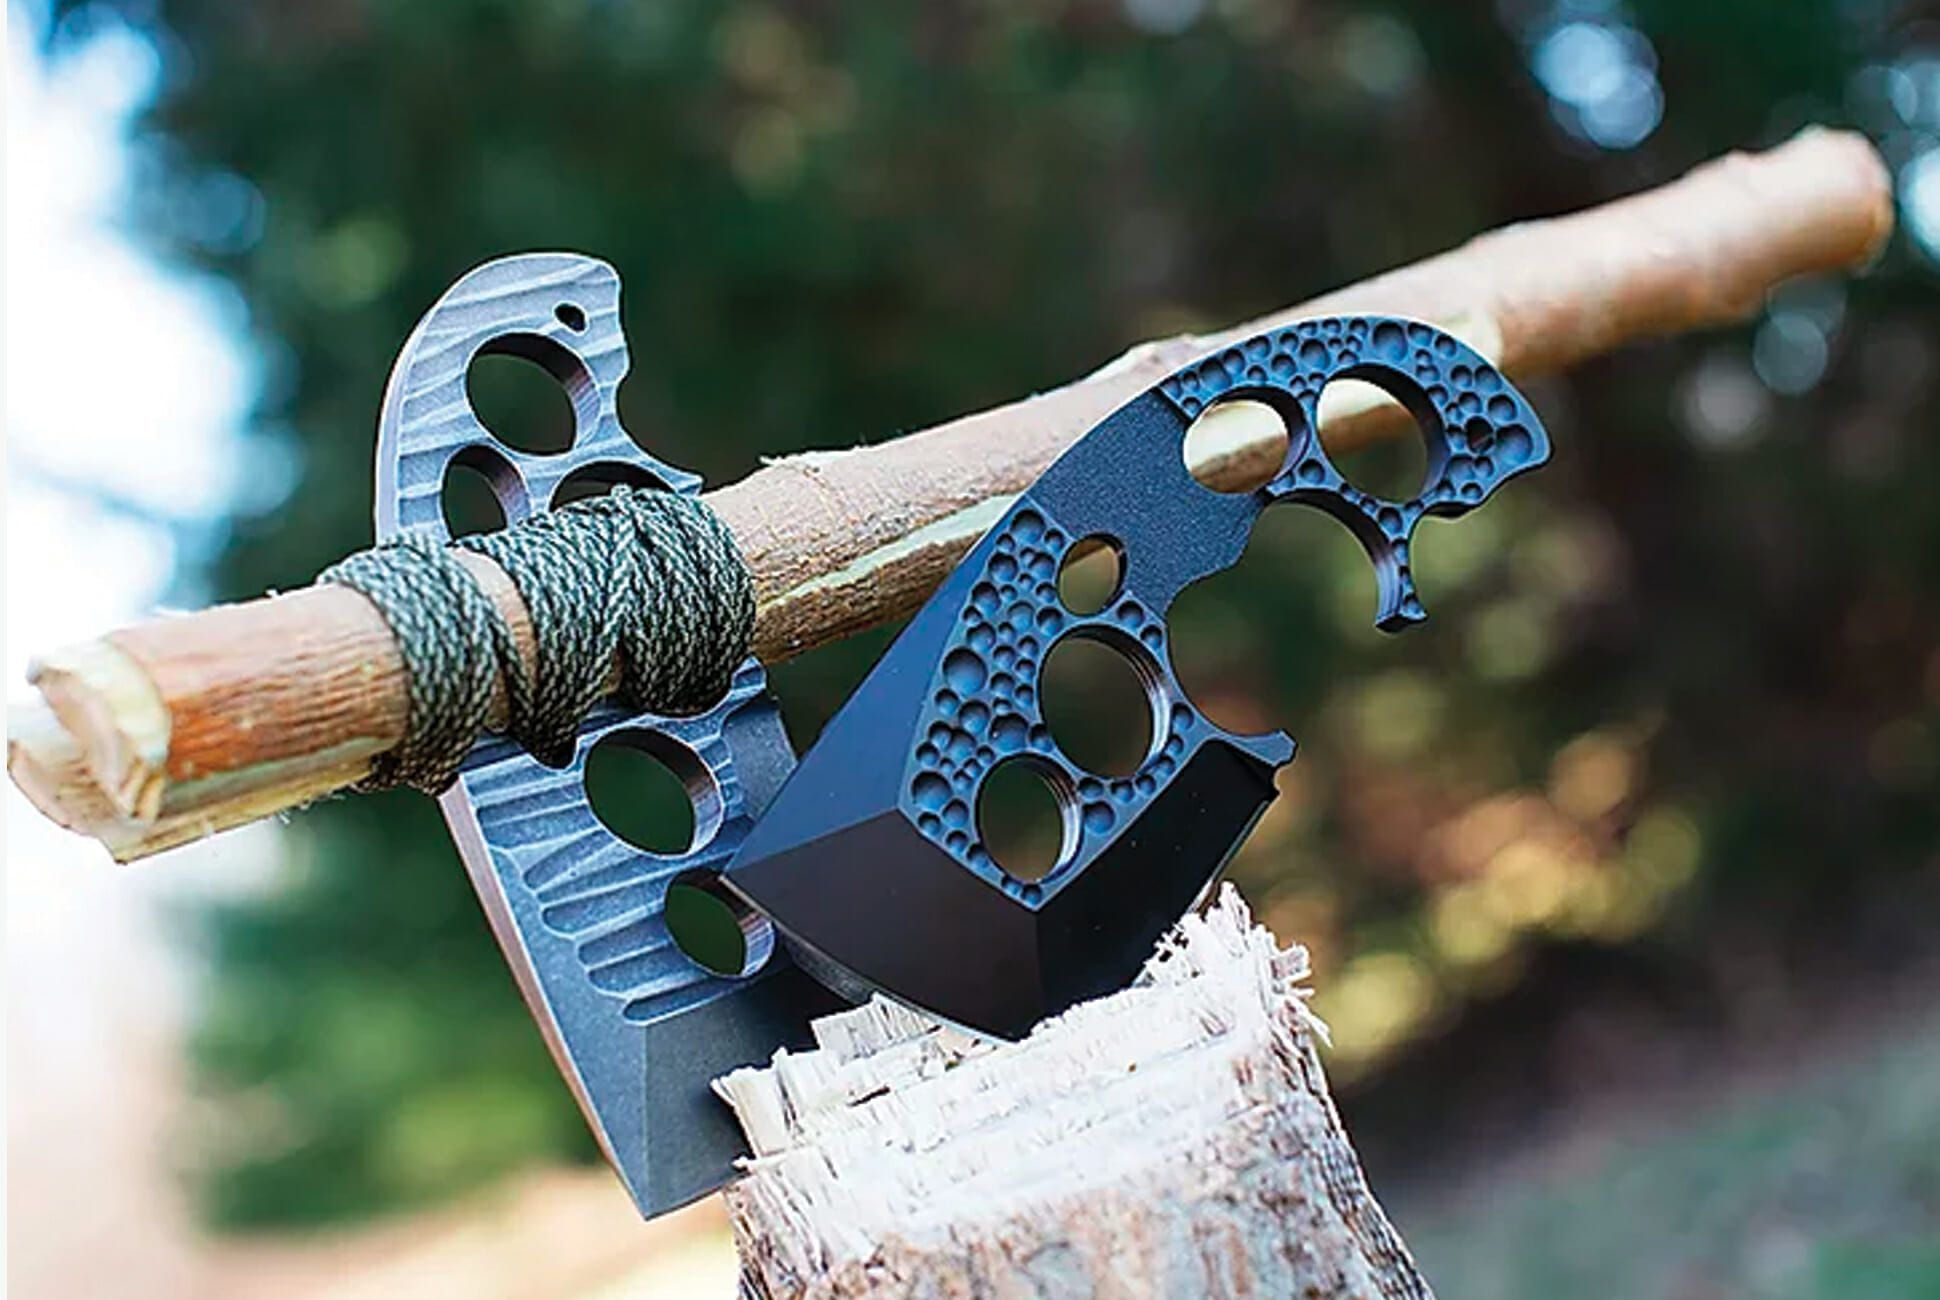 This New Survival Knife Is Weird and Awesome